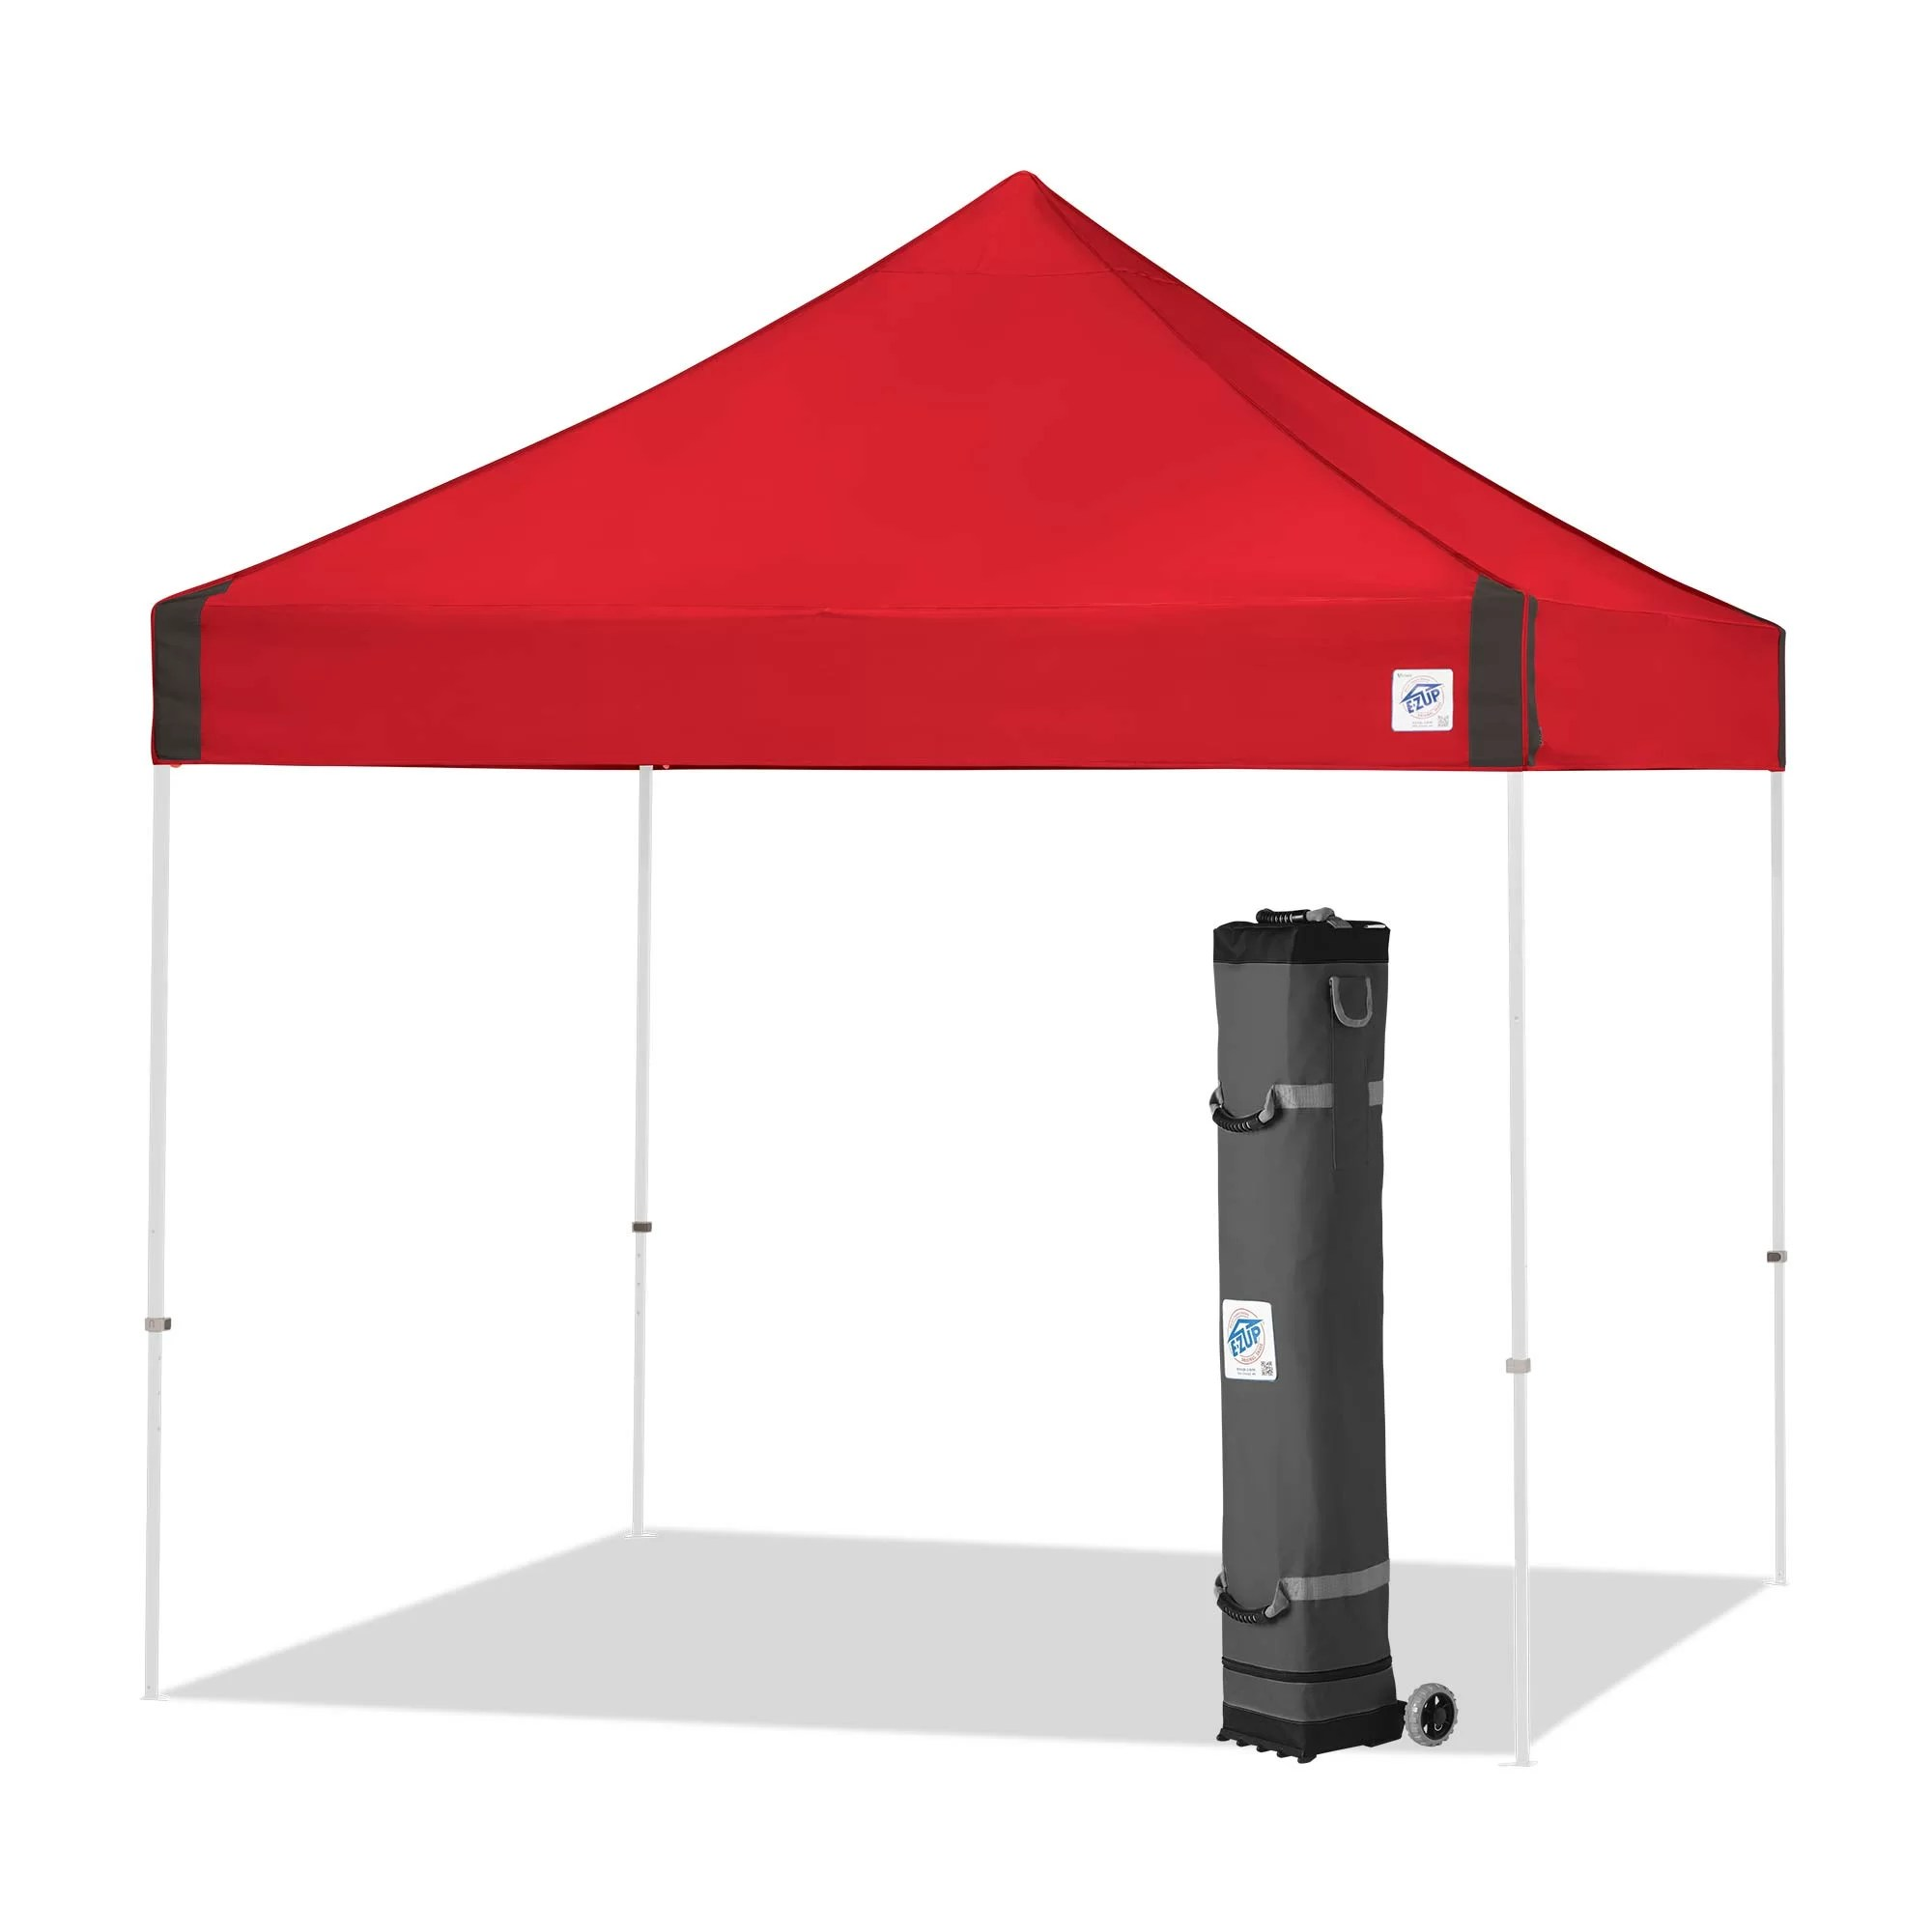 Pop Up Canopy Vantage 10 Ft W X 10 Ft D Steel Pop Up Canopy